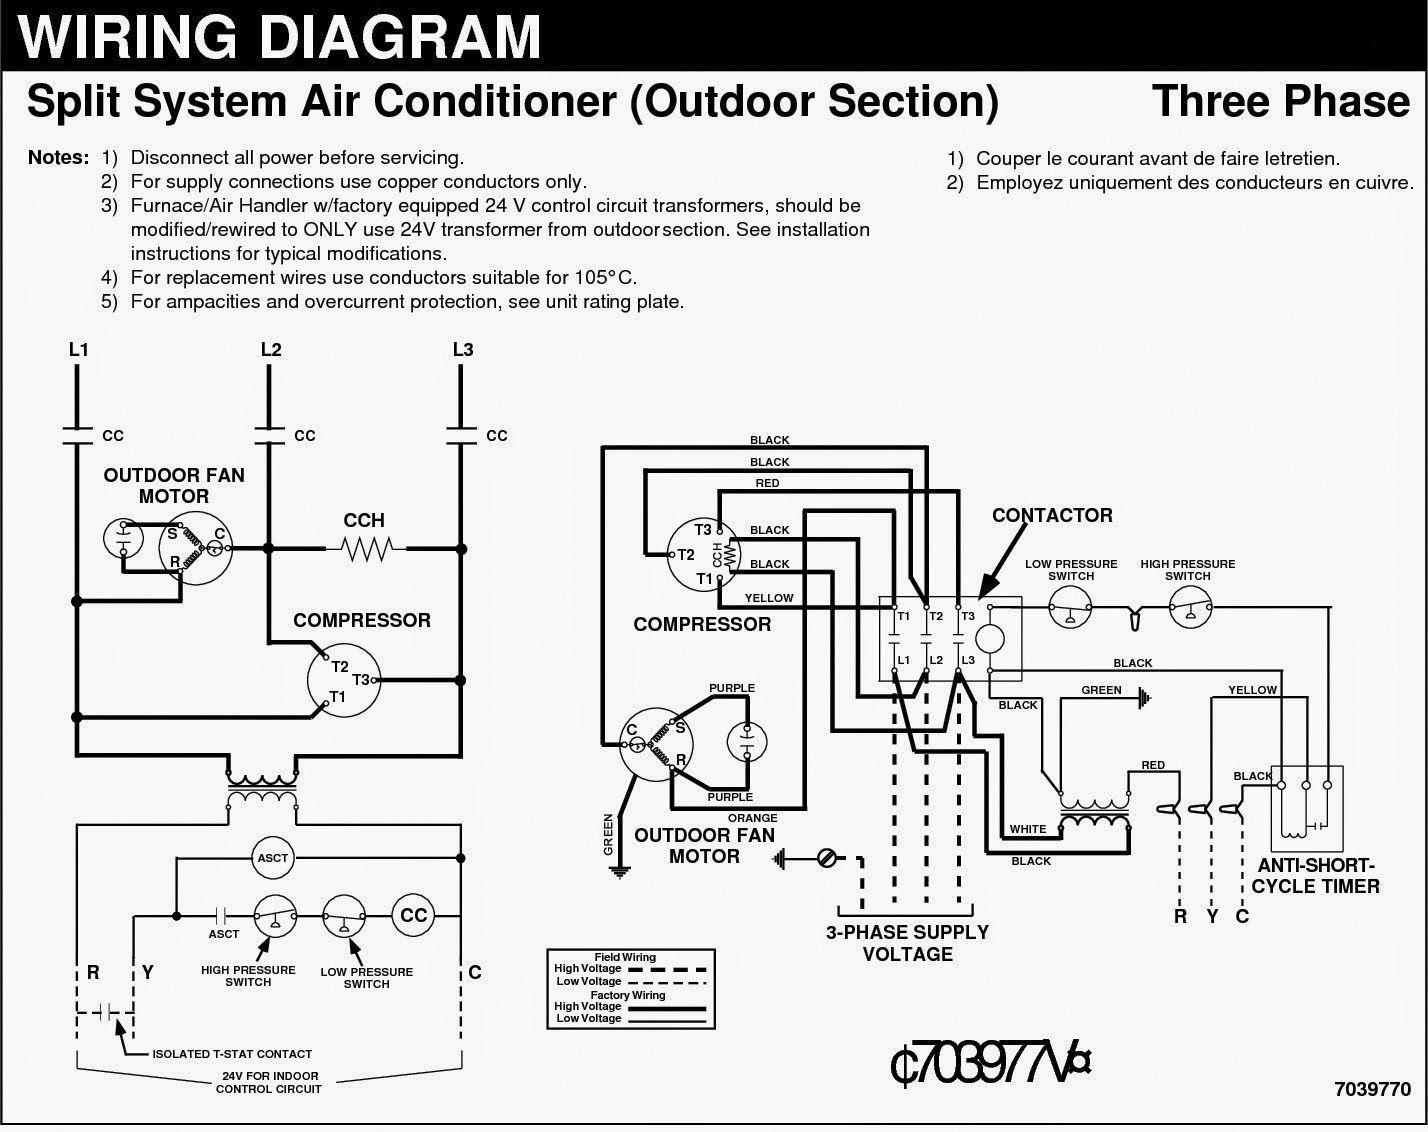 Can You Provide A Diagram Of The Air Conditioning System Wiring Diagram